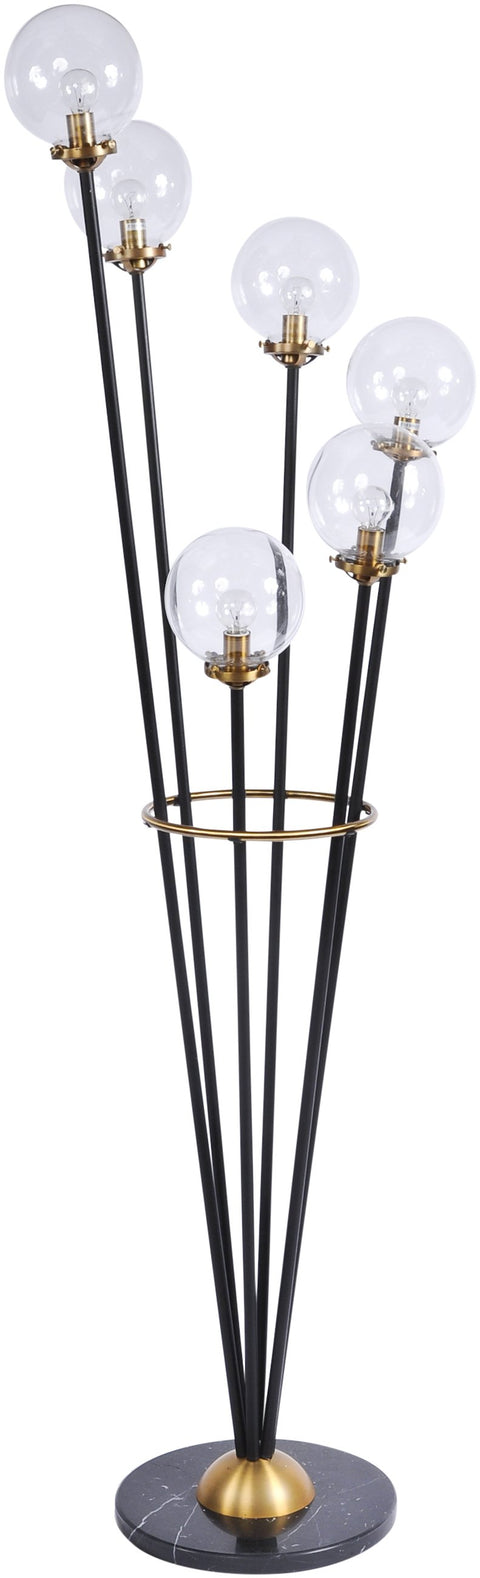 Mercer Floor Lamp with Ball Detail